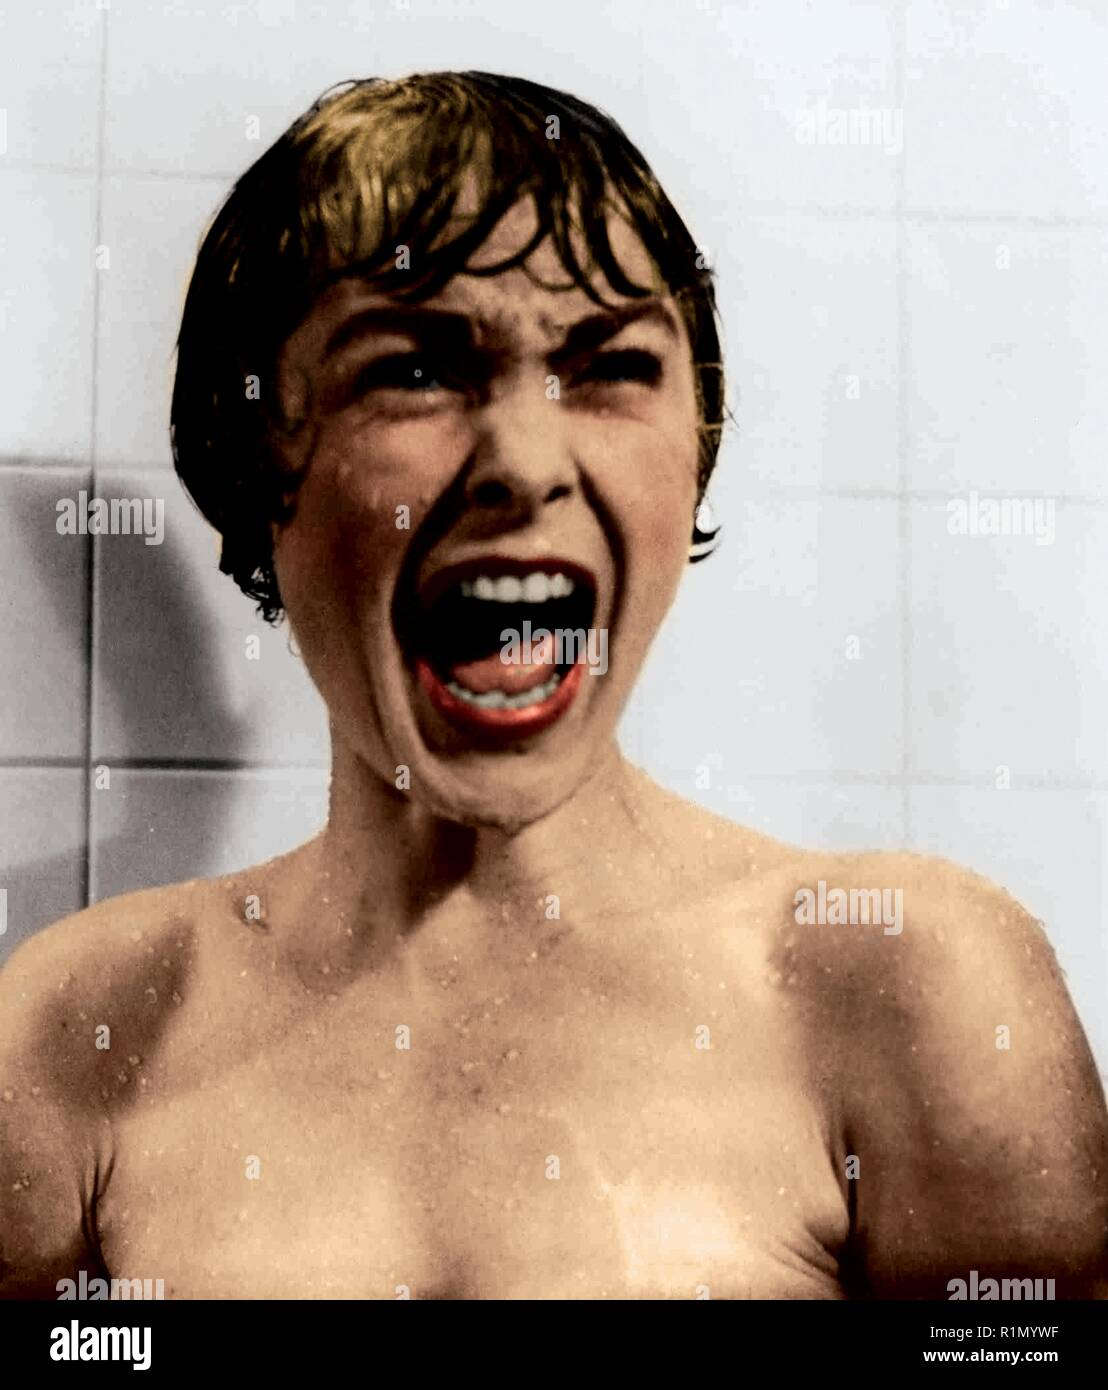 Janet Leigh in her most lasting recognition as the doomed Marion Crane in Alfred Hitchcock's Psycho (1960), which earned her a Golden Globe Award for Best Supporting Actress Hollywood Photo Archive / MediaPunch - Stock Image